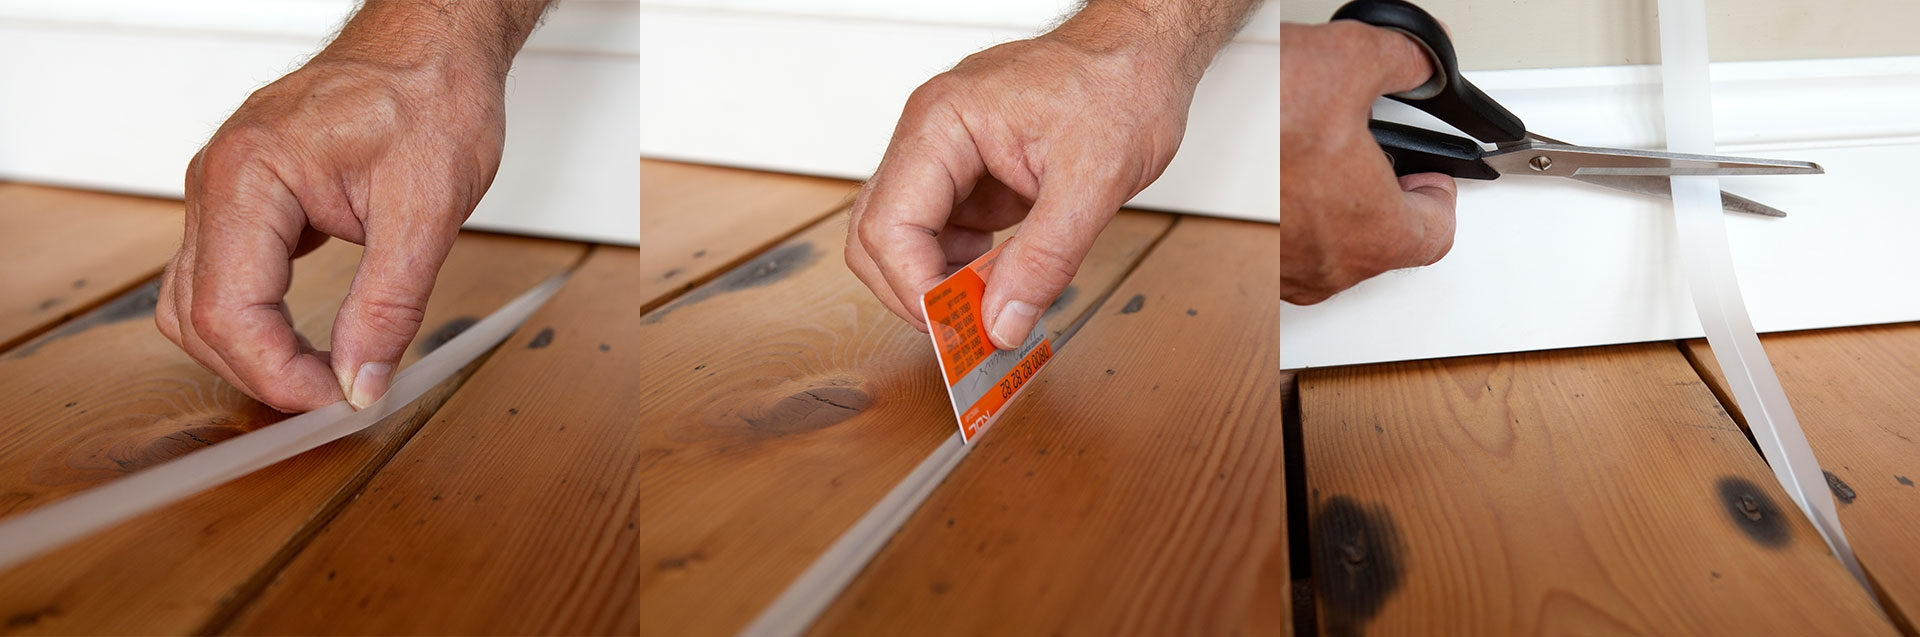 Sealing Wood Floors Cracks